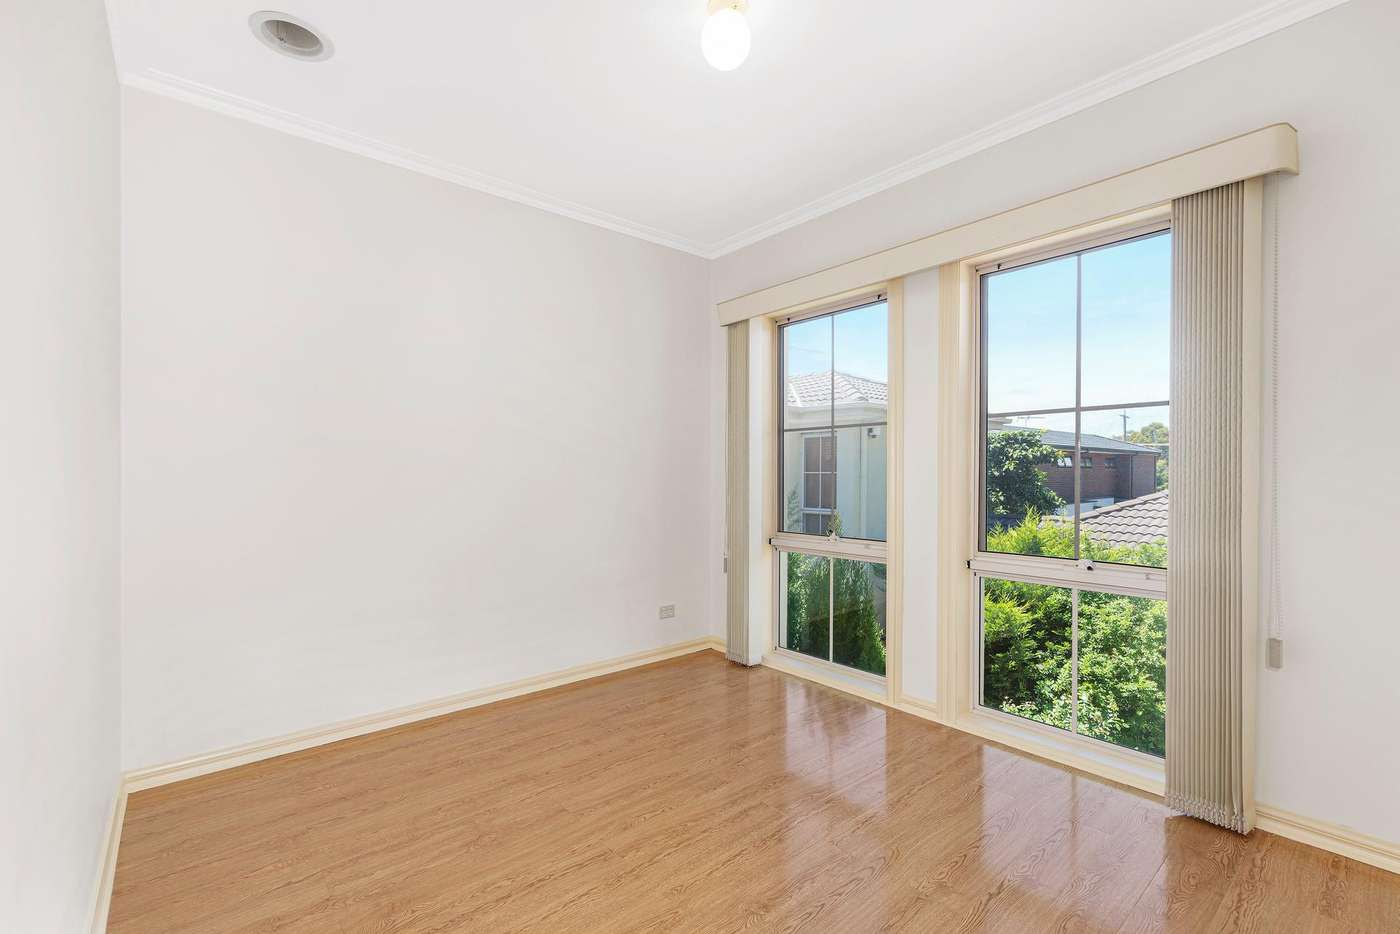 Seventh view of Homely townhouse listing, 3/55 George Street, Doncaster East VIC 3109